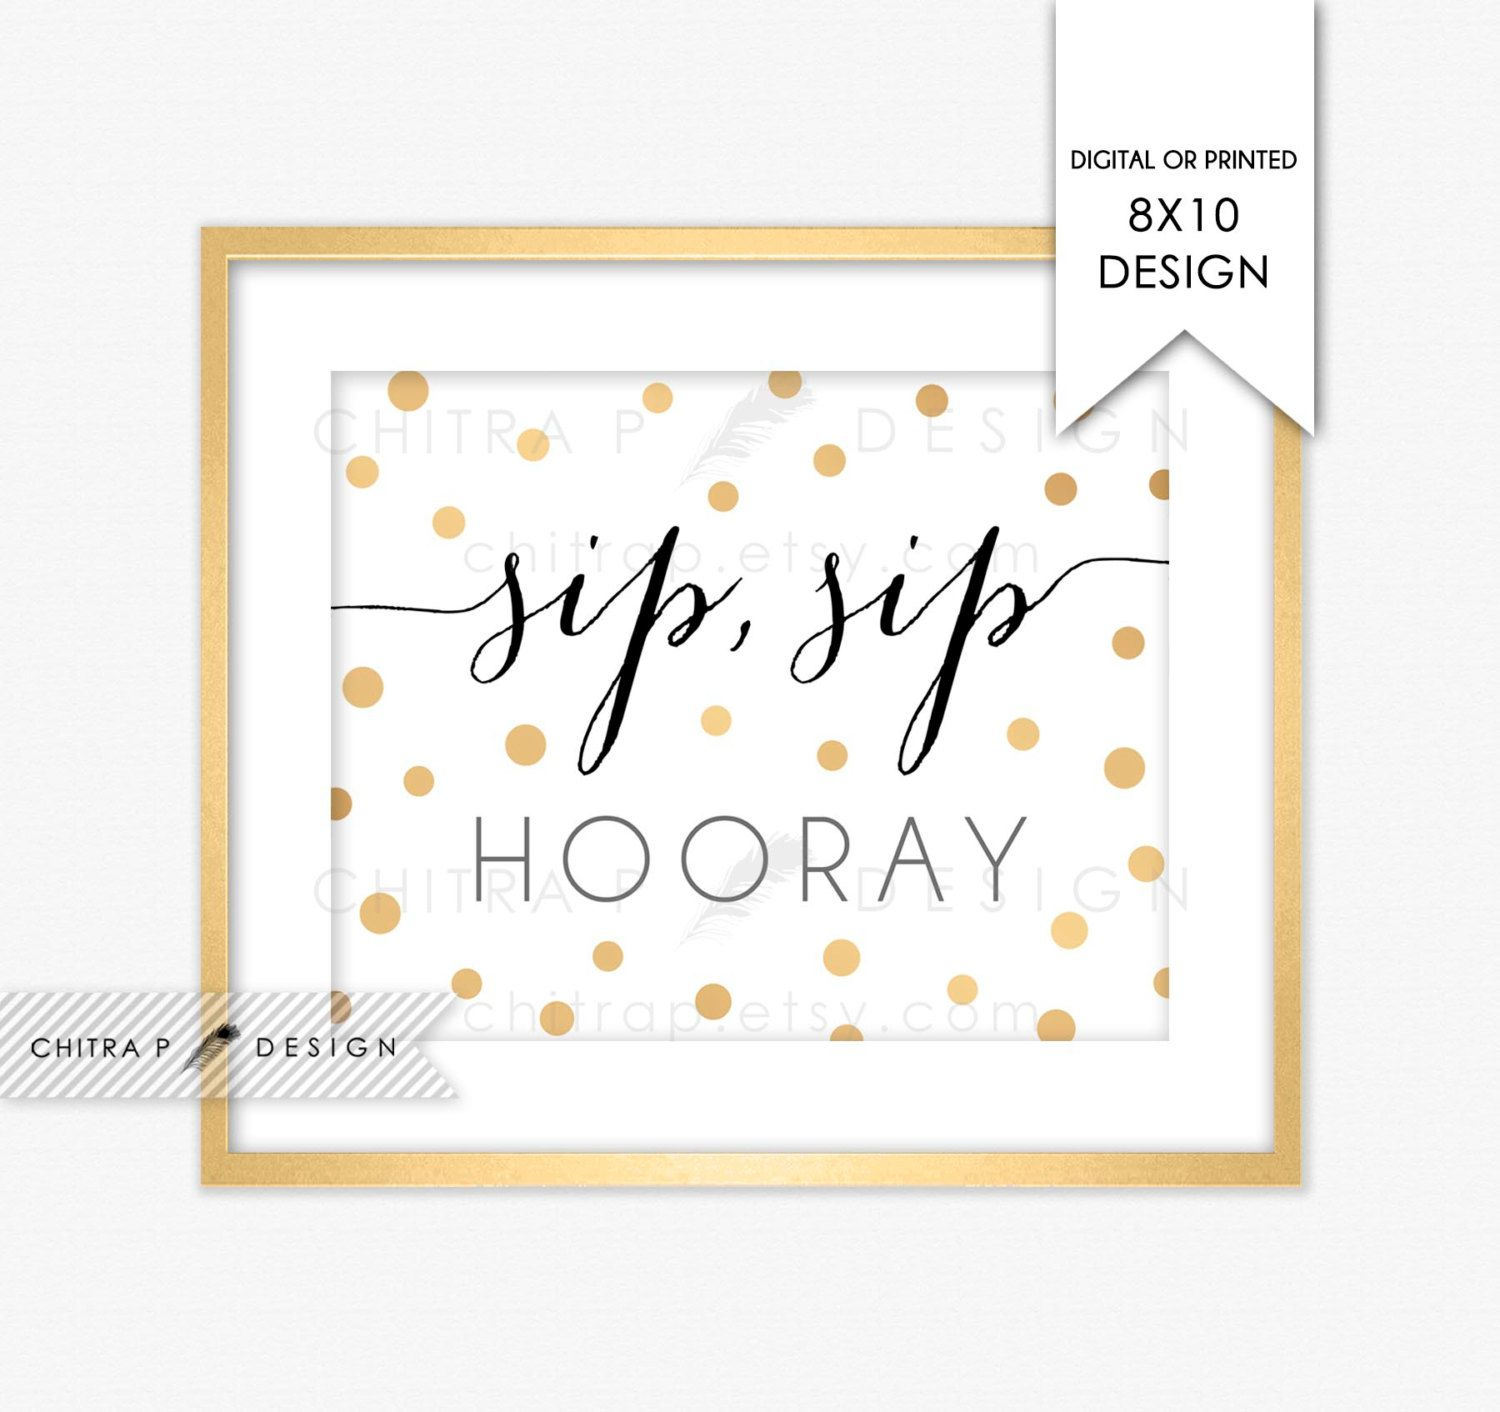 photograph regarding Sip Sip Hooray Printable known as Sip Sip Hooray Signal - Released or Printable, Pop Fizz Clink